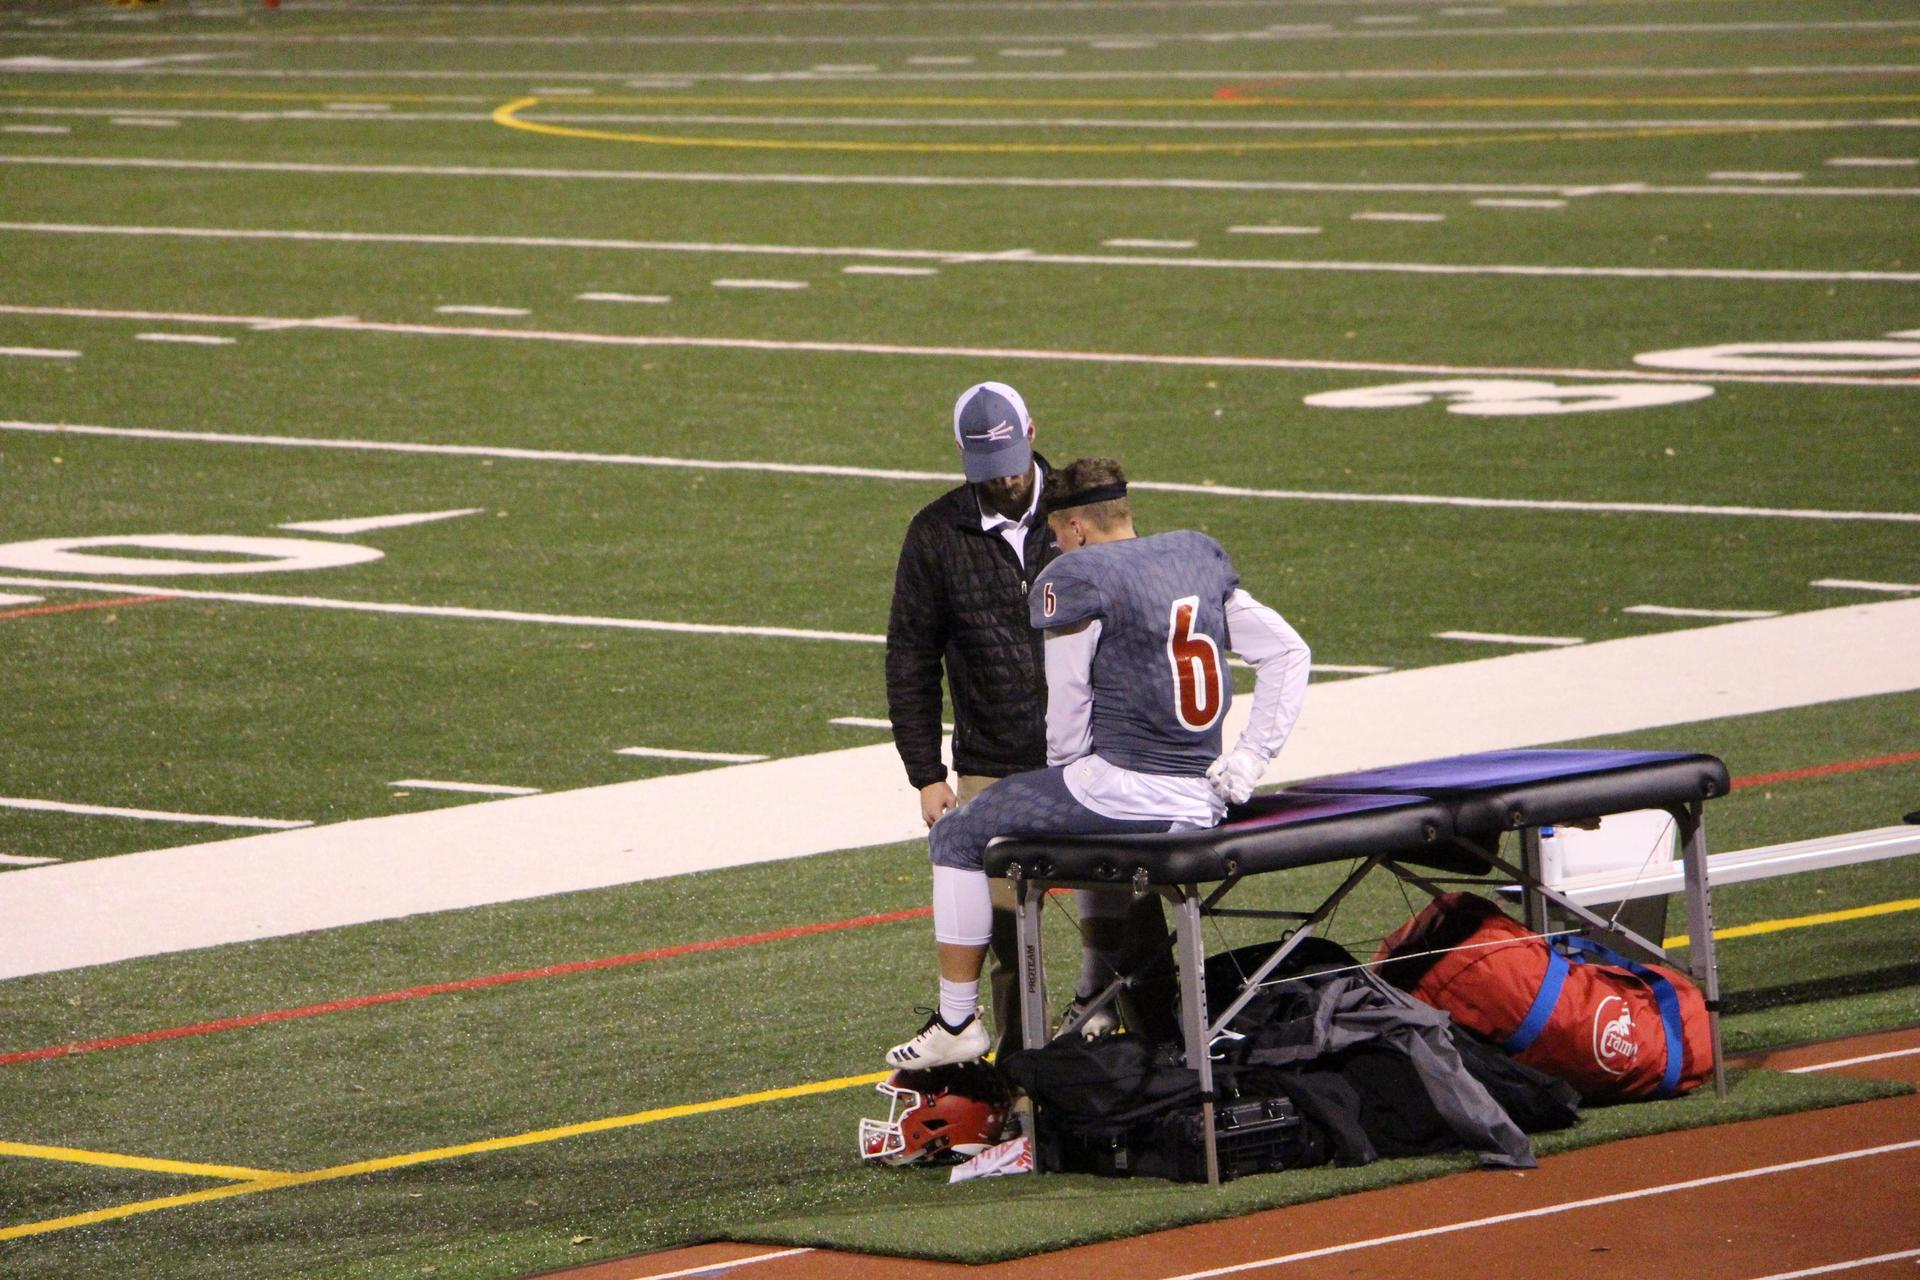 Football player being evaluated on side line